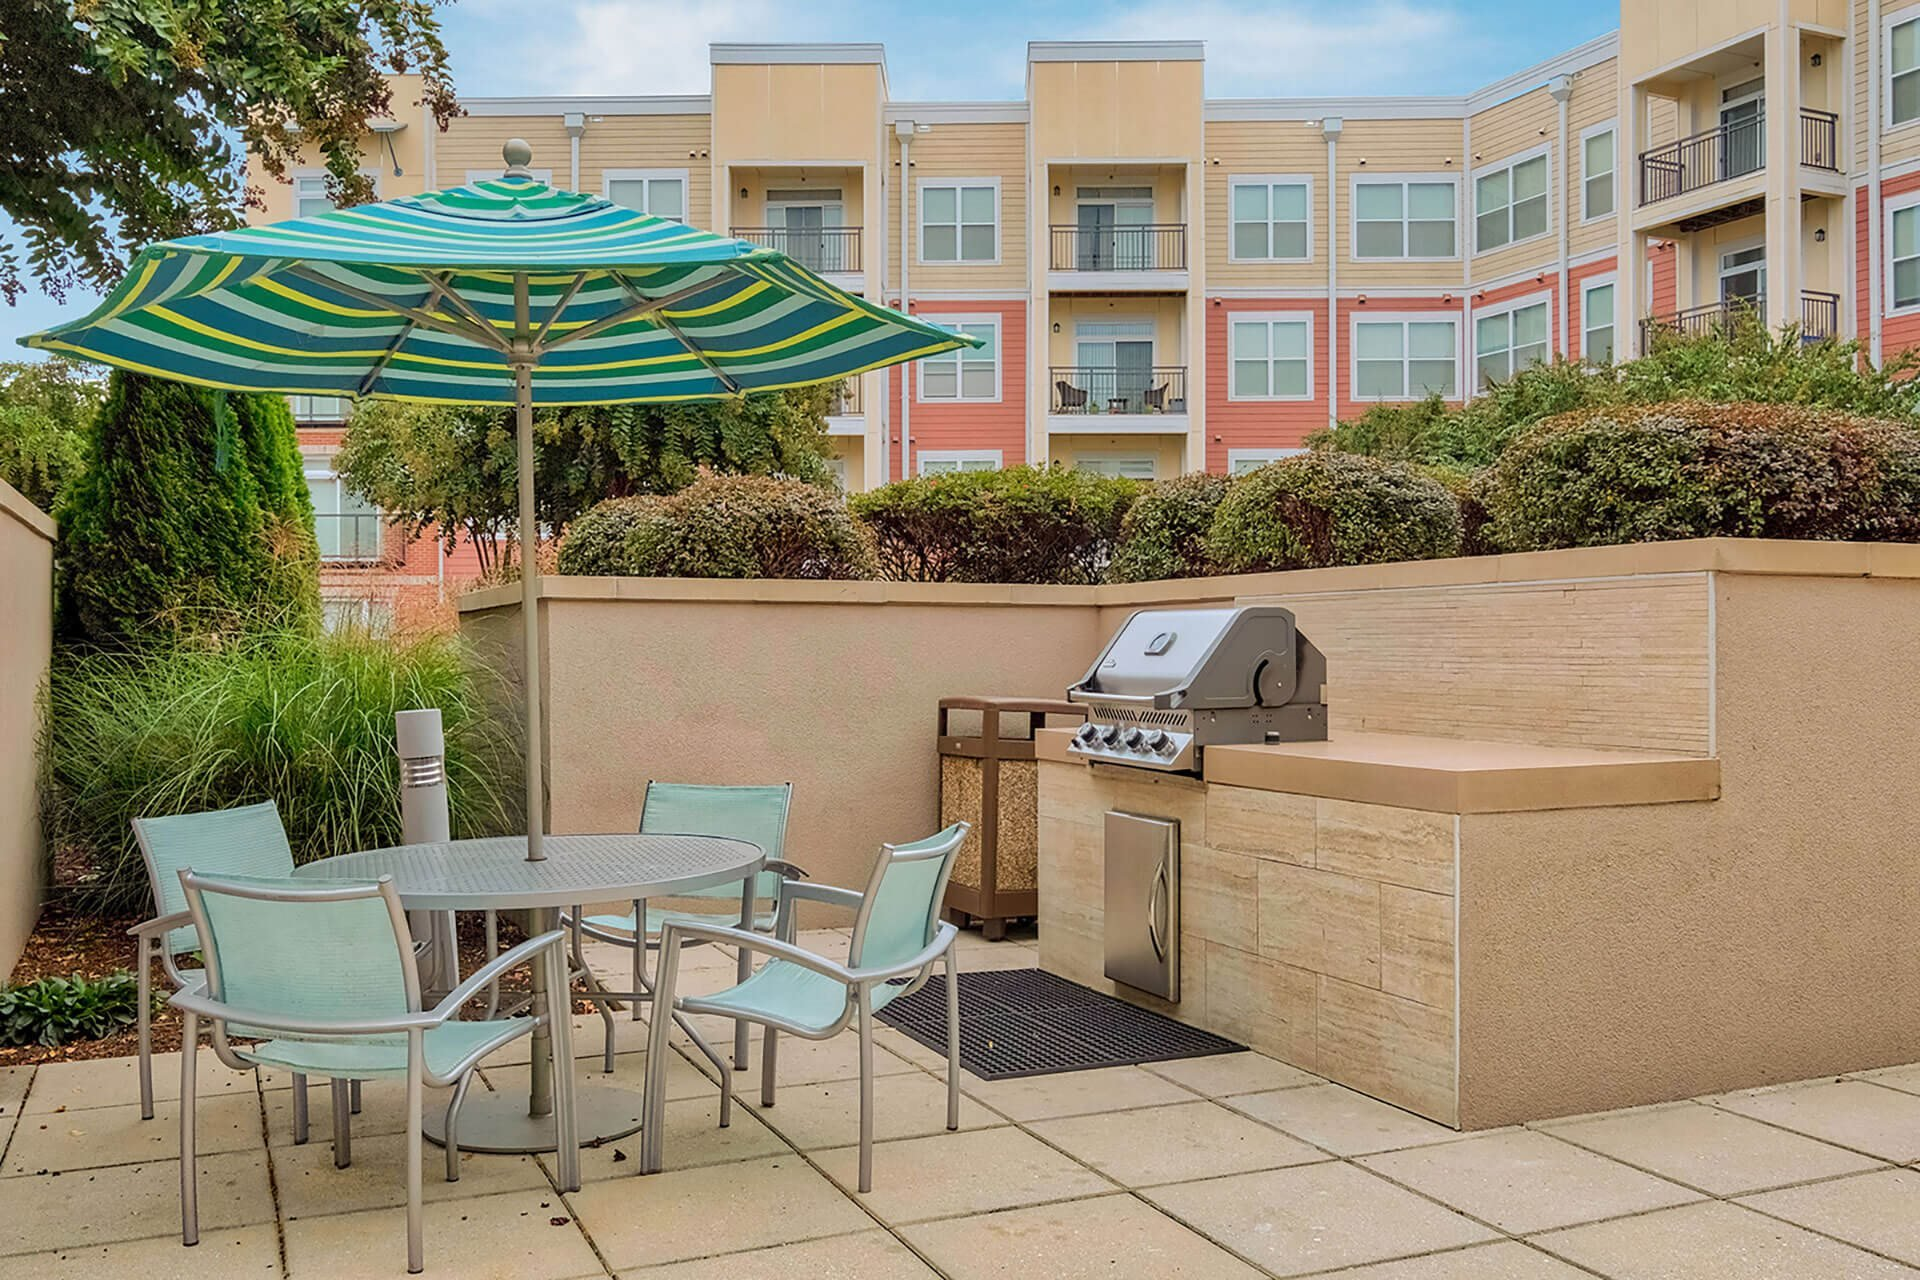 Outdoor grilling stations at The Ridgewood by Windsor, Fairfax, 22030